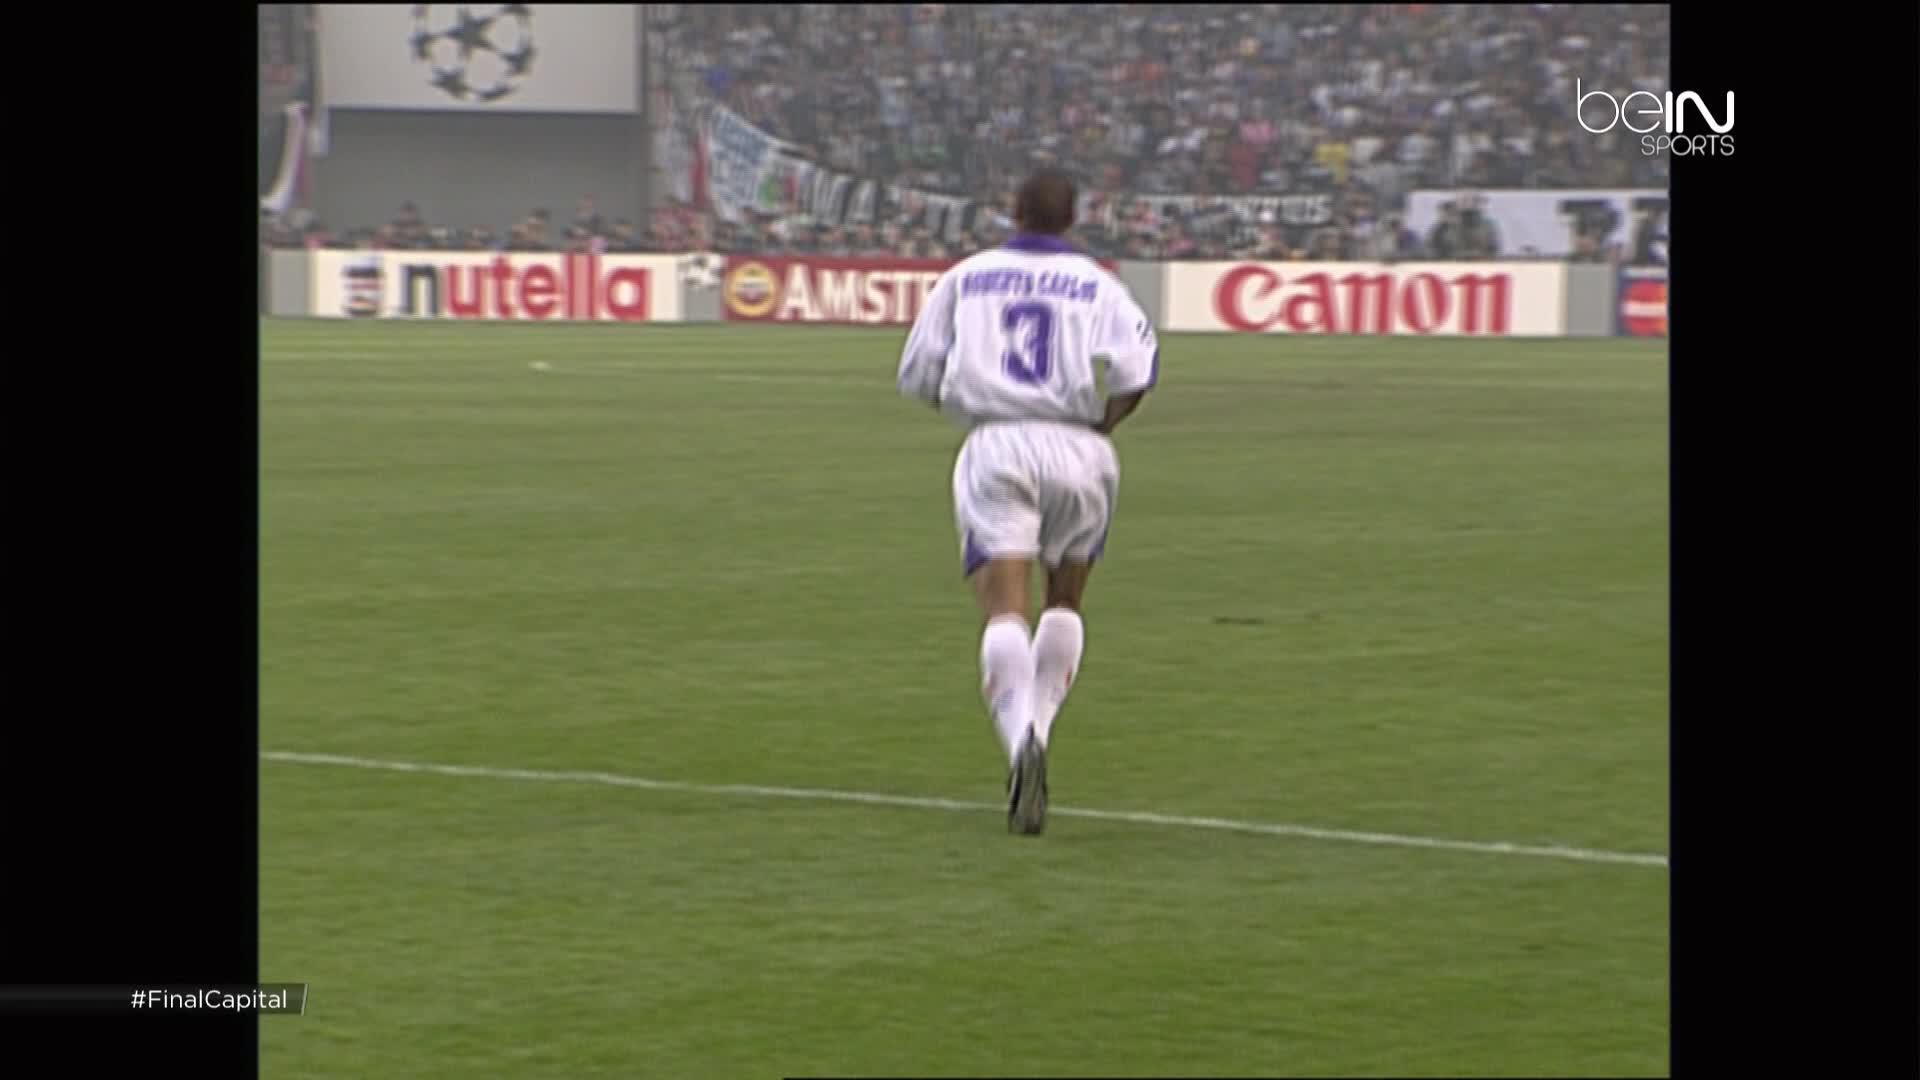 Champions League 1997/1998 - Final - Real Madrid Vs. Juventus (1080i/1080p/576p) (Castellano/Español Latino/Castellano) E9ccfcef760834715dc123be6e9ab6dfo